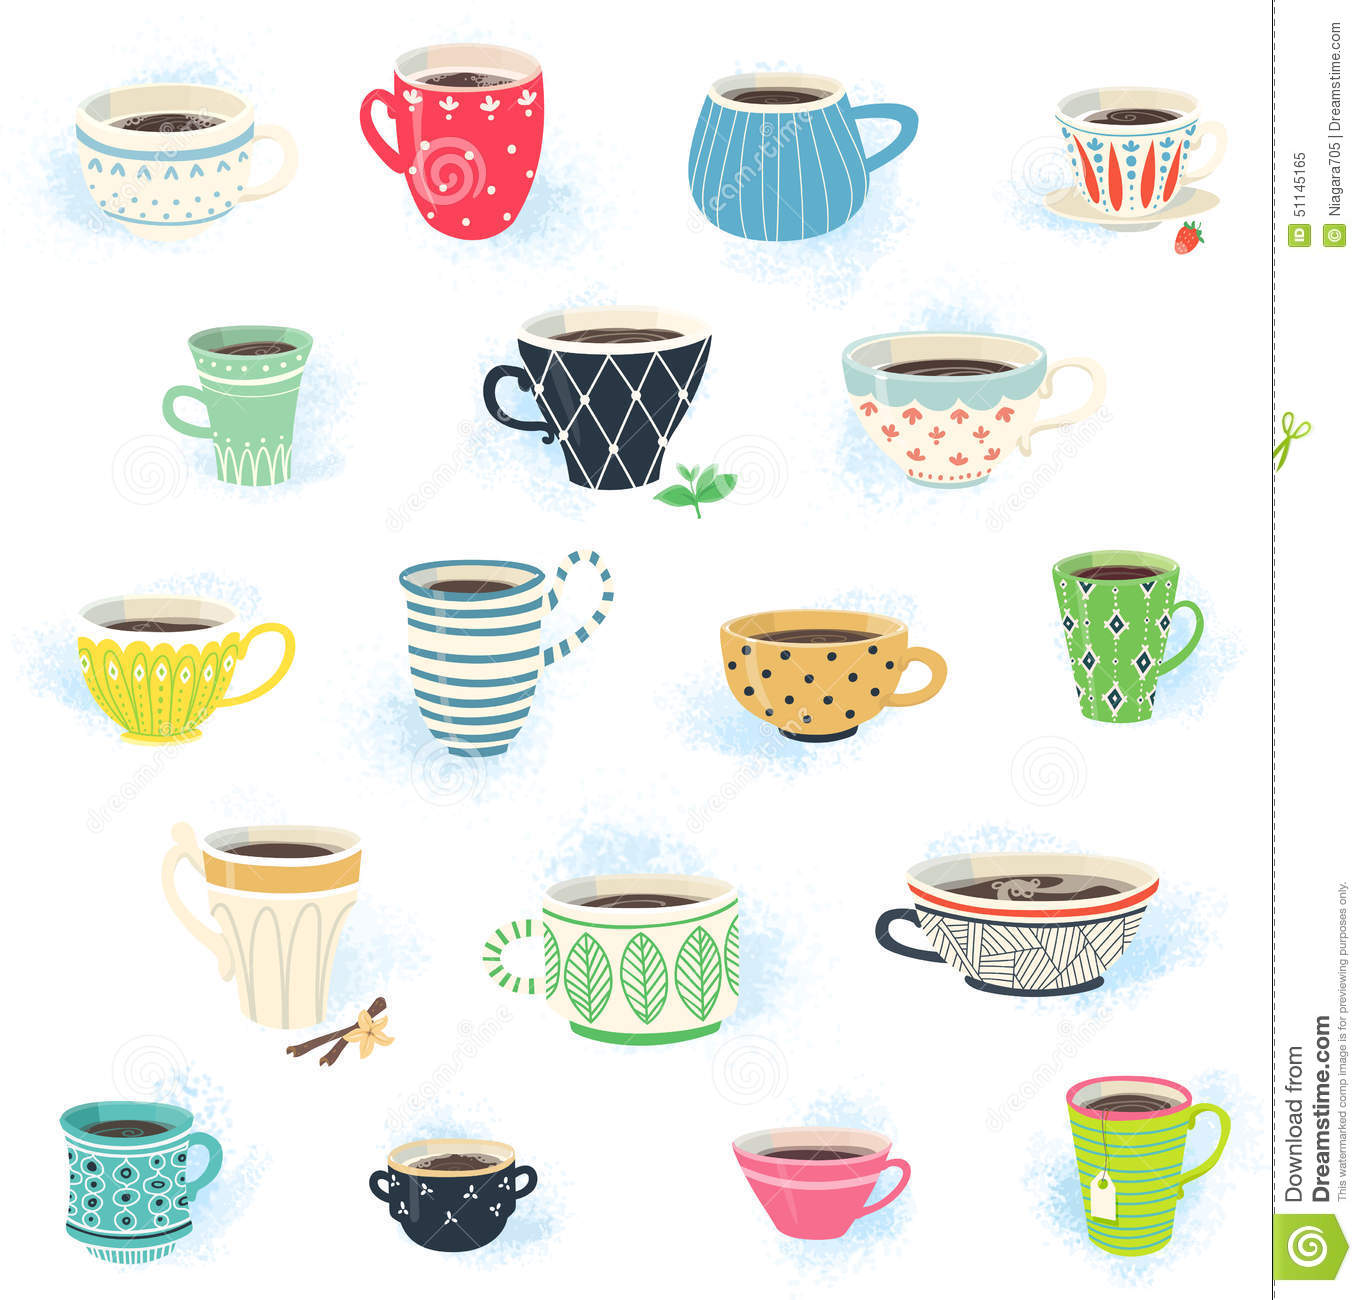 Stock Illustration Clip Art Tea Coffee Cup Collection Cute Cups Image51145165 on Stock Vector Illustration Food Pyramid For Kids Cartoon